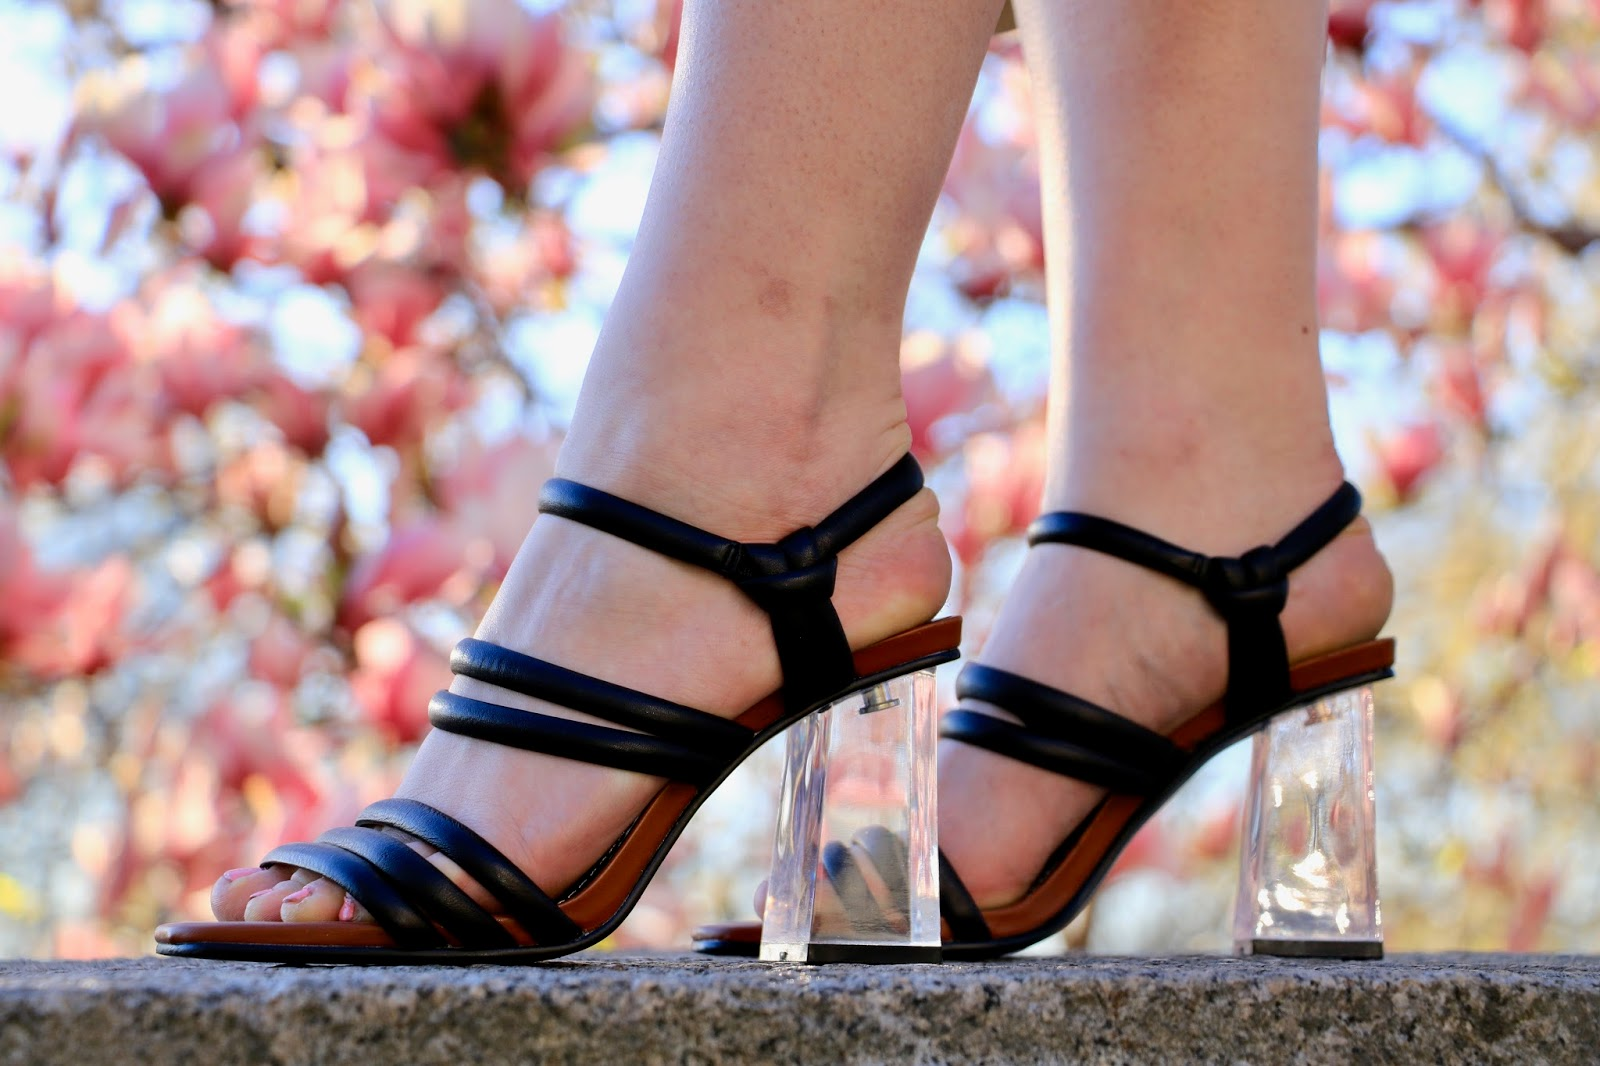 Nyc fashion blogger Kathleen Harper wearing Zara lucite heel shoes